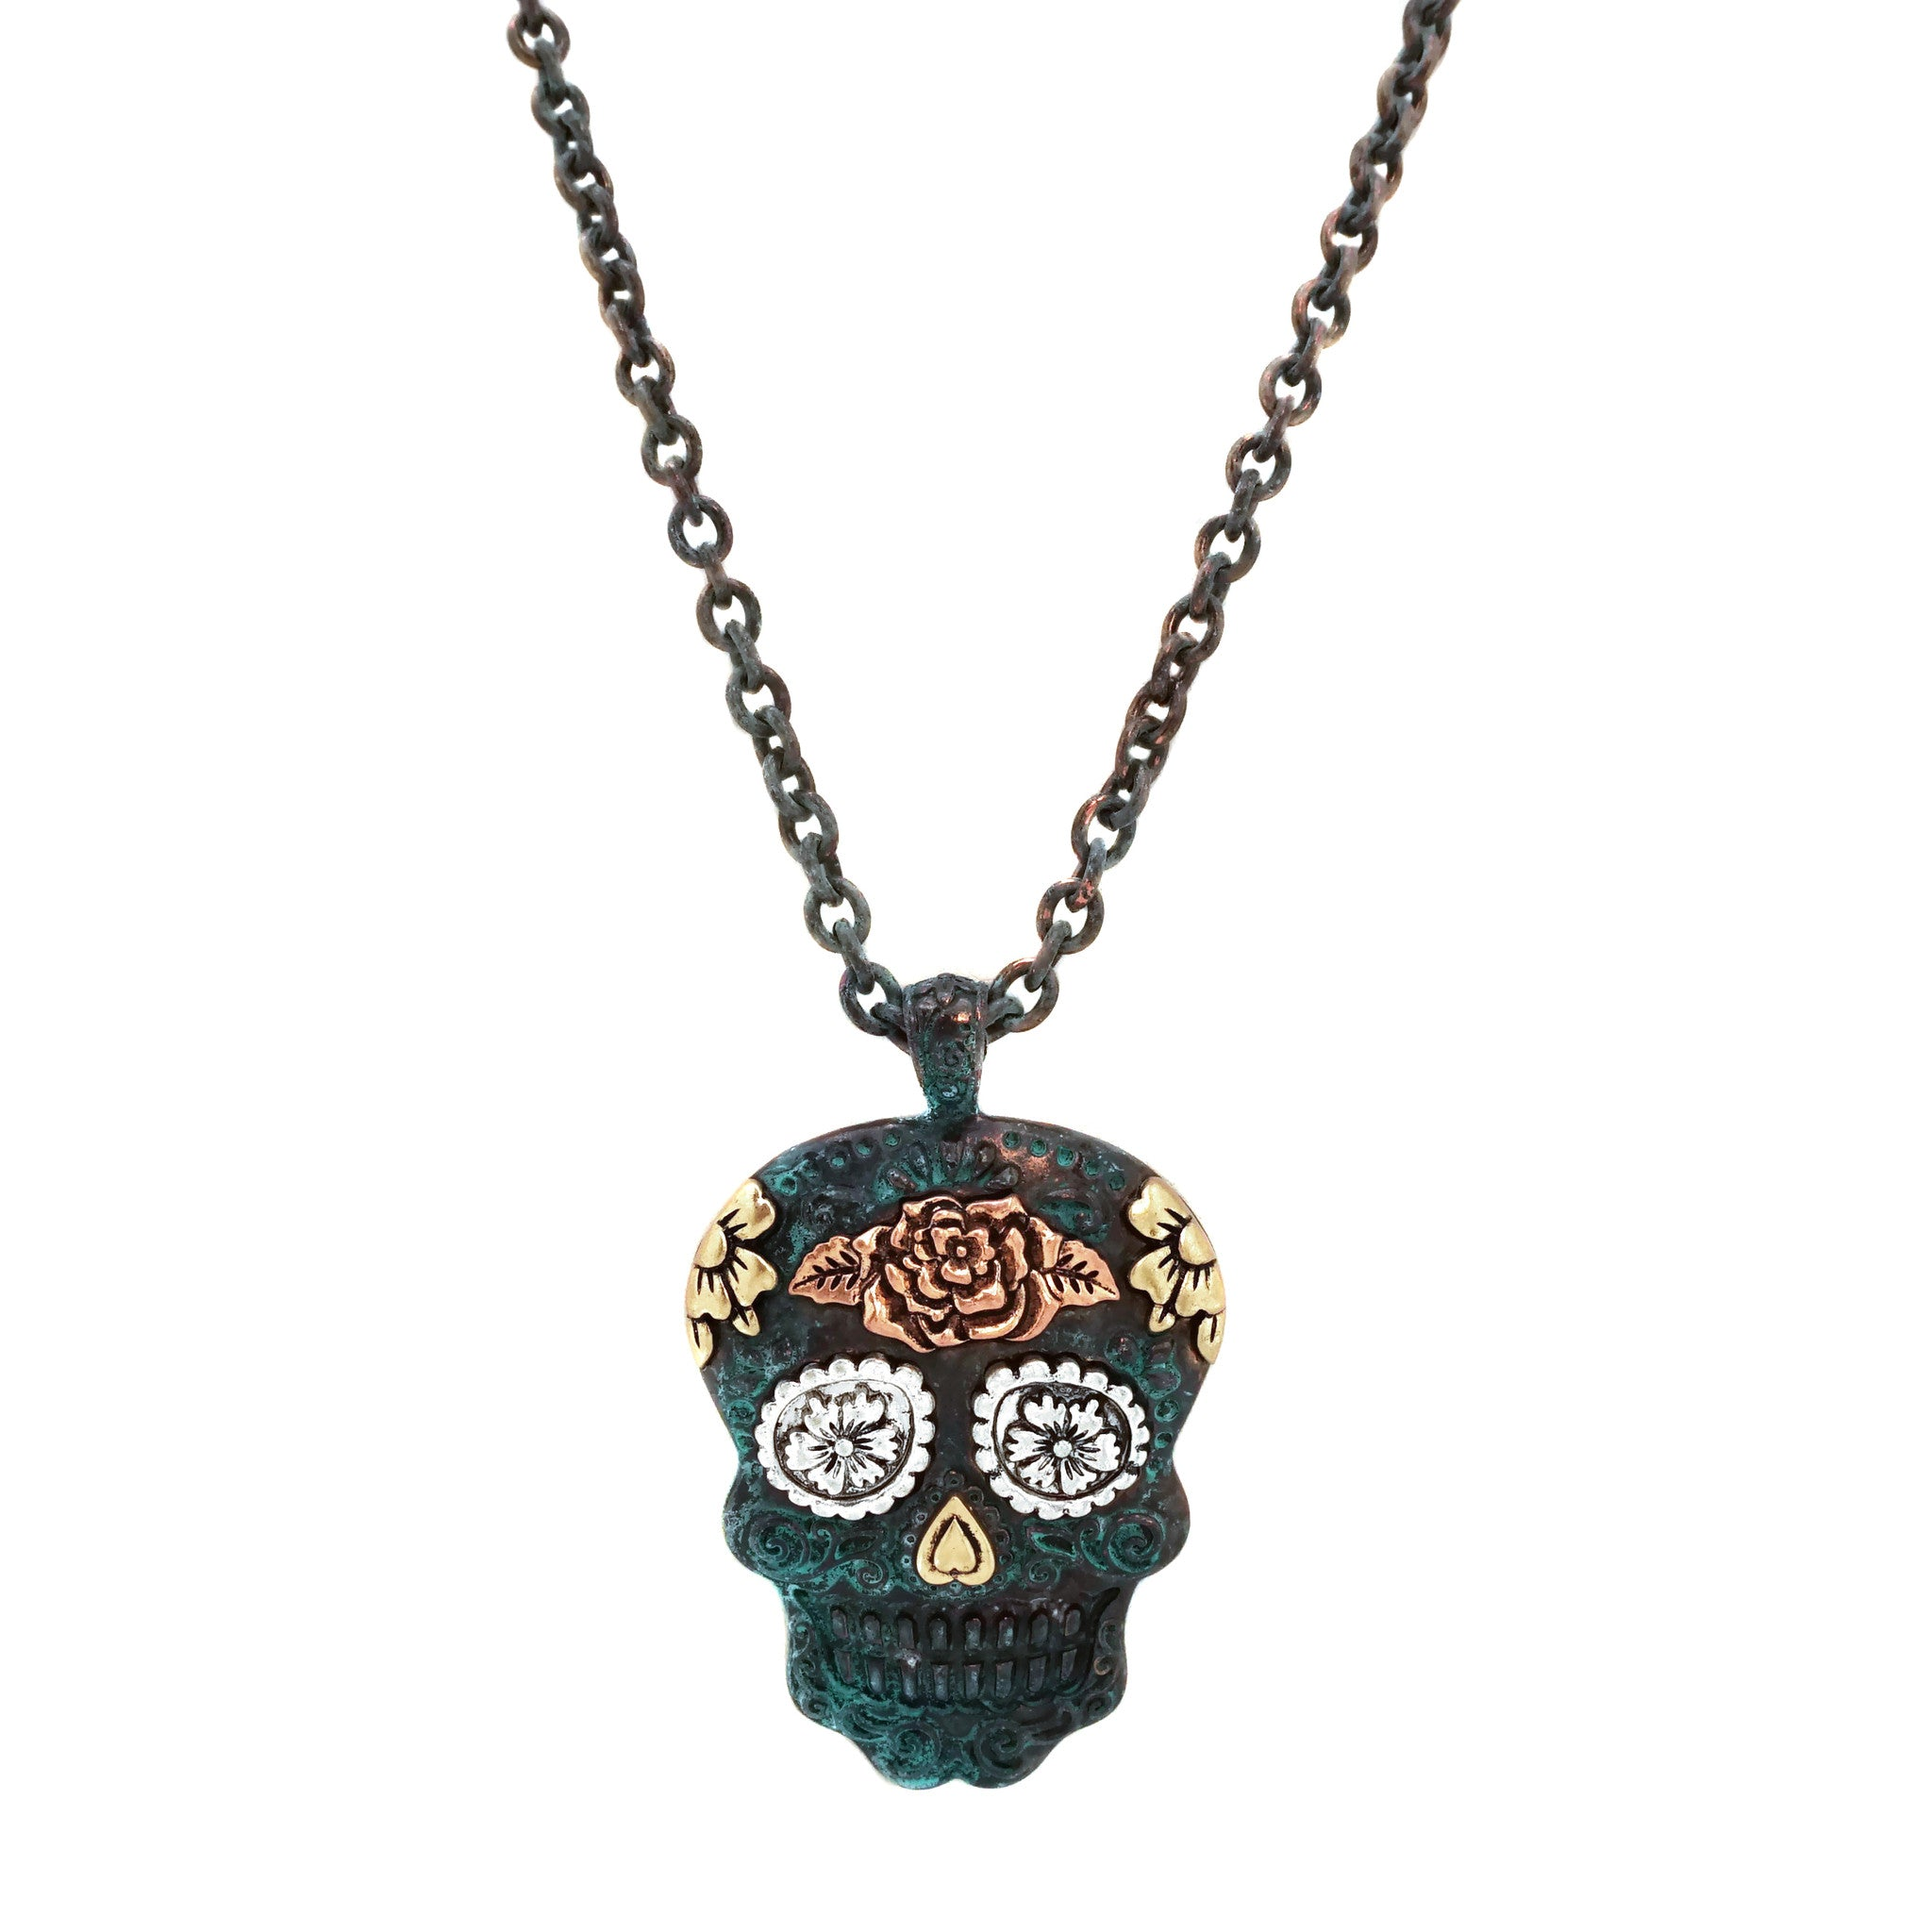 clisson sapphire pendant gold skull and chain diamond jewellery design white